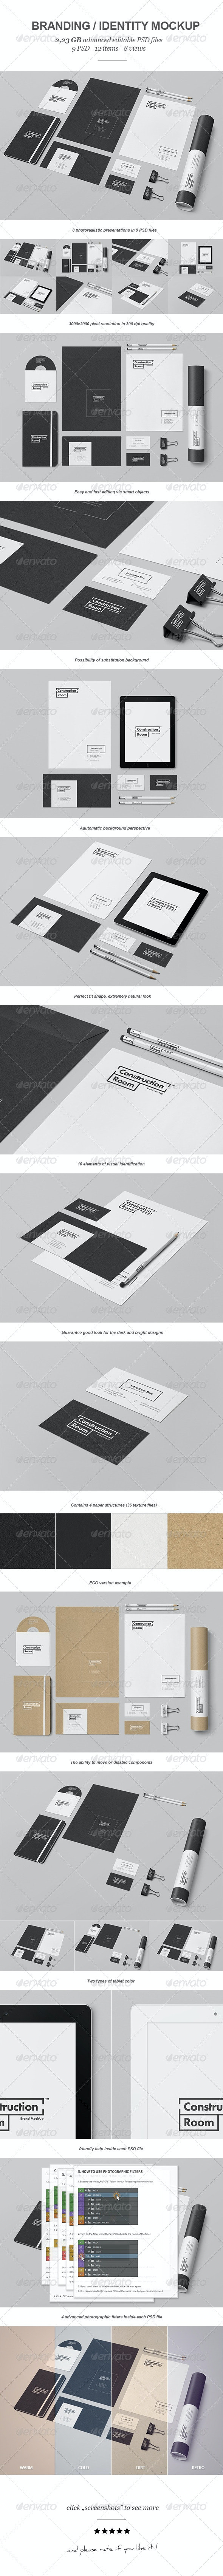 Branding / Identity Mock-up 5 - Stationery Print